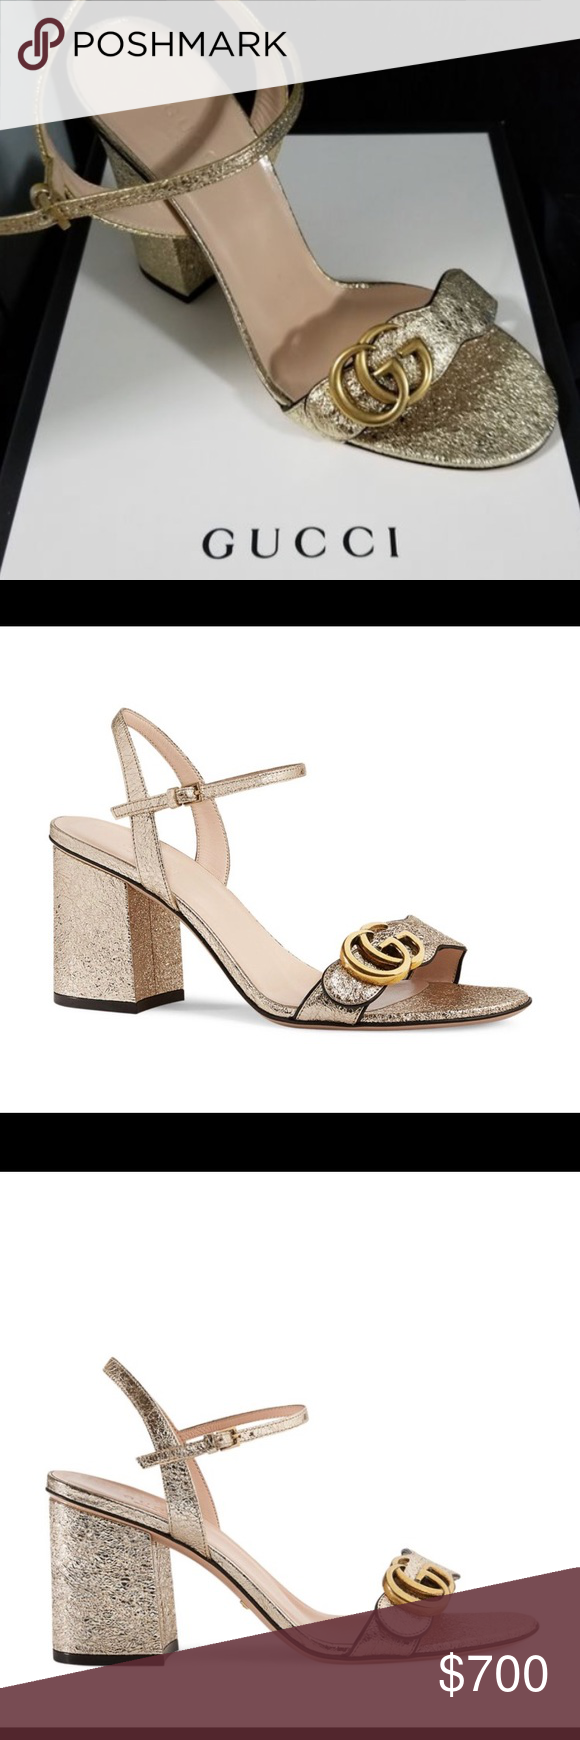 646fdcee2e57 Gucci women s Marmont metallic open toe Sandals Brand new in box! Comes  with original dust bag Metallic leather sandal with black piping and  gold-tone ...